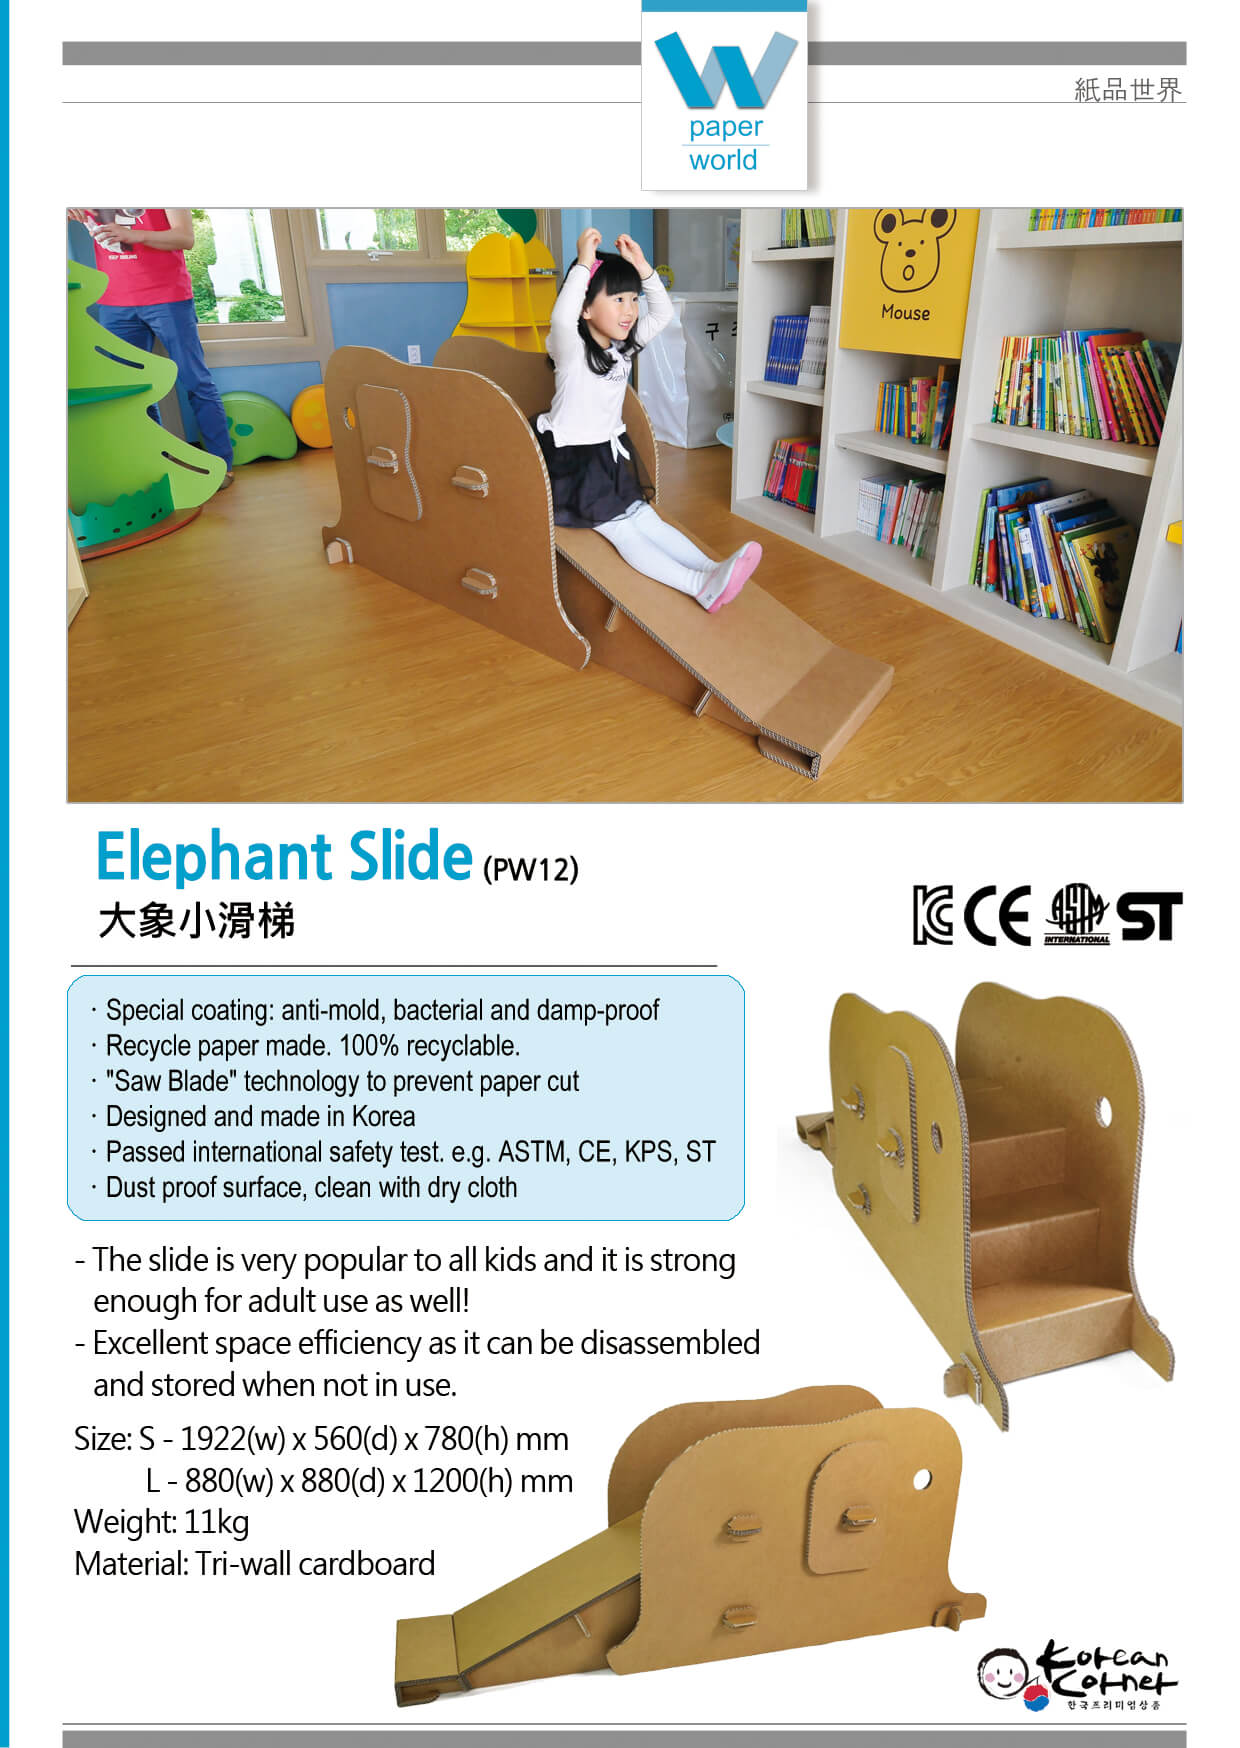 The elephant slide